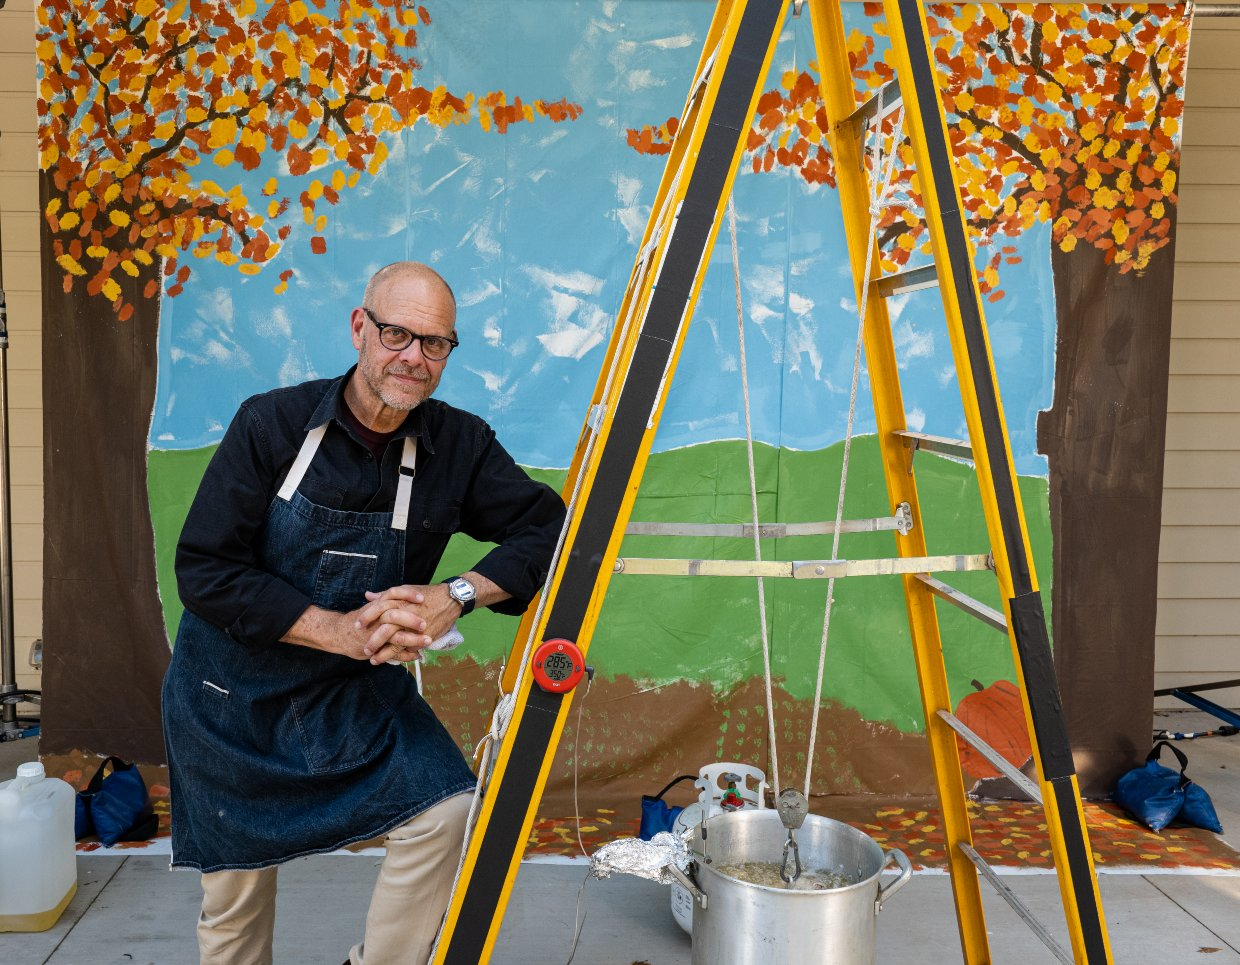 Alton Brown and his Turkey Derrick for deep-frying Thanksgiving turkey.